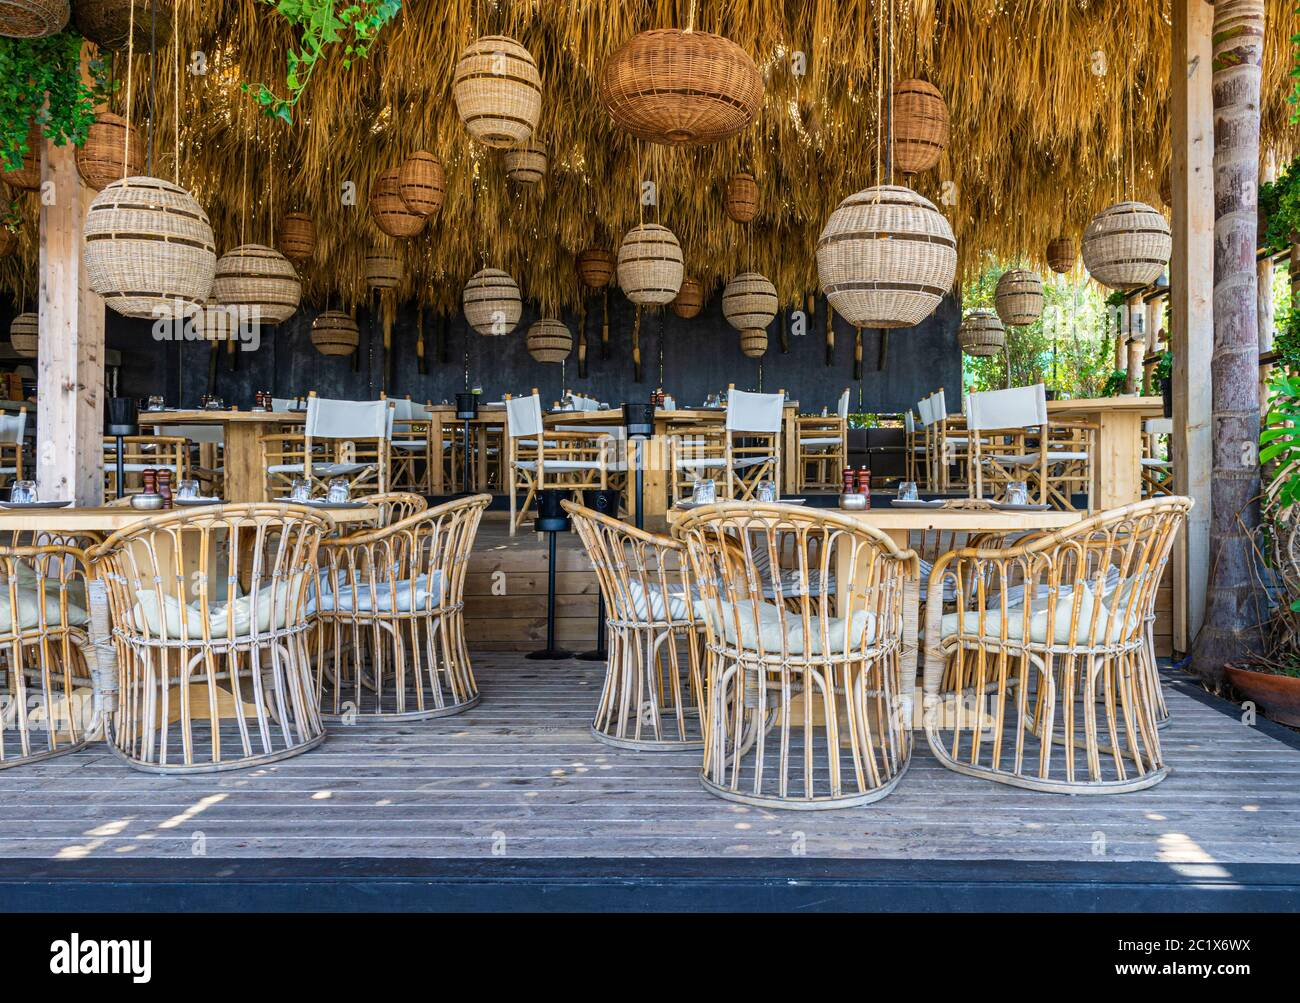 Cafe Restaurant Decorated With A Bamboo Rattan Furniture Design And Hanging Grass Ceiling Stock Photo Alamy